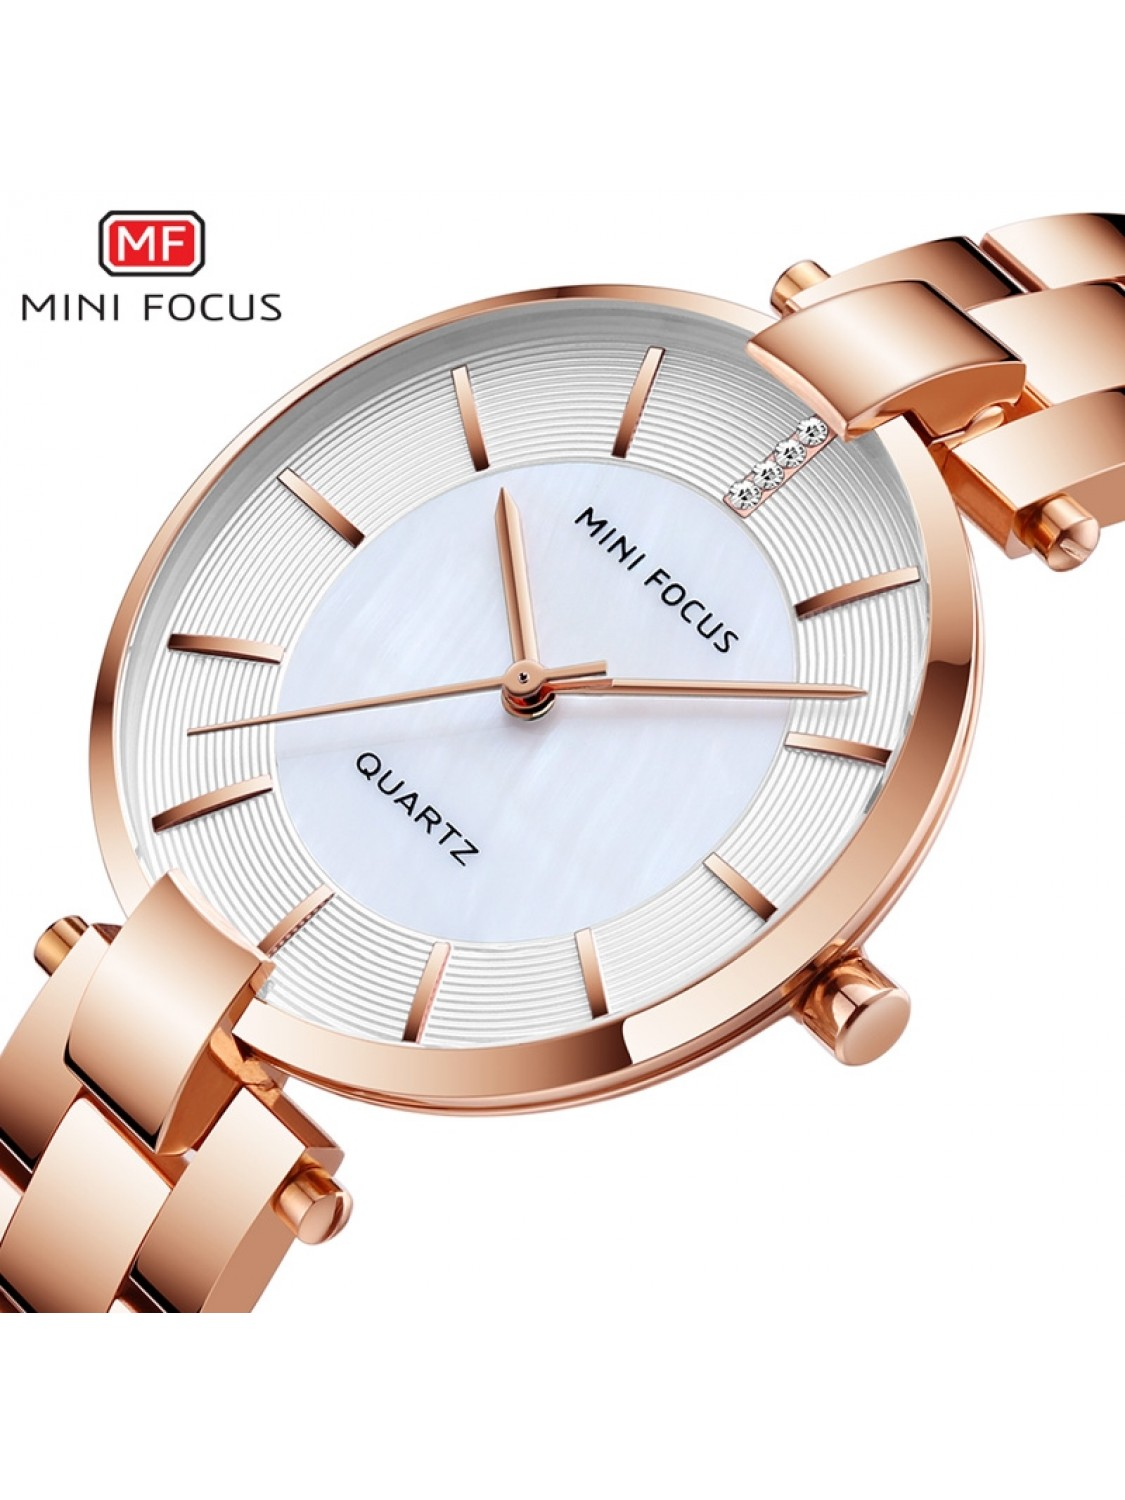 Megir Mini Focus MF0224 Rose Gold-332